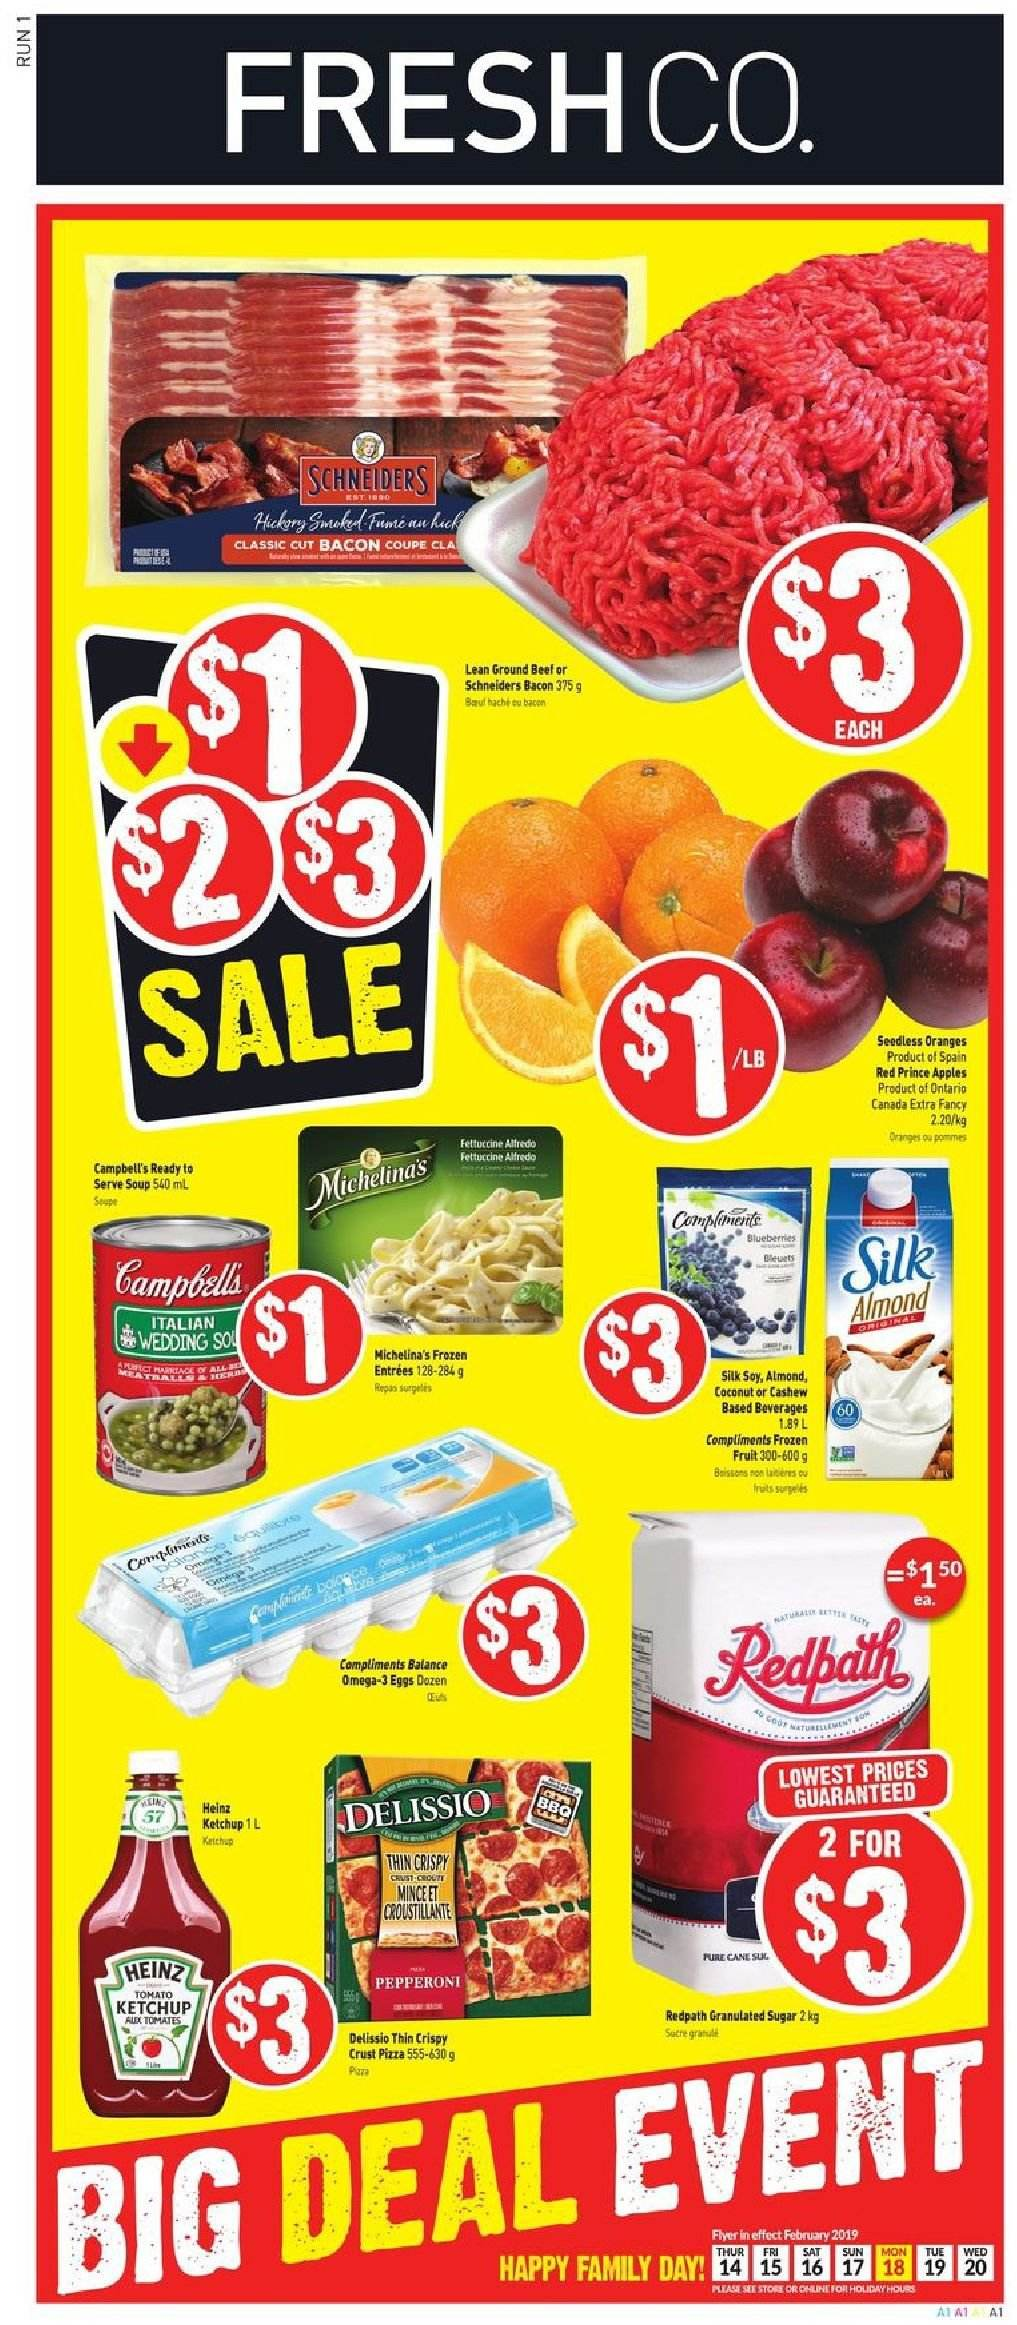 FreshCo. Flyer - February 14, 2019 - February 20, 2019 - Sales products - apple, bacon, beef meat, eggs, frozen, granulated sugar, ground beef, sugar, heinz, ketchup, pizza, pepperoni, oranges, coconut, soup, pommes, coupe. Page 1.